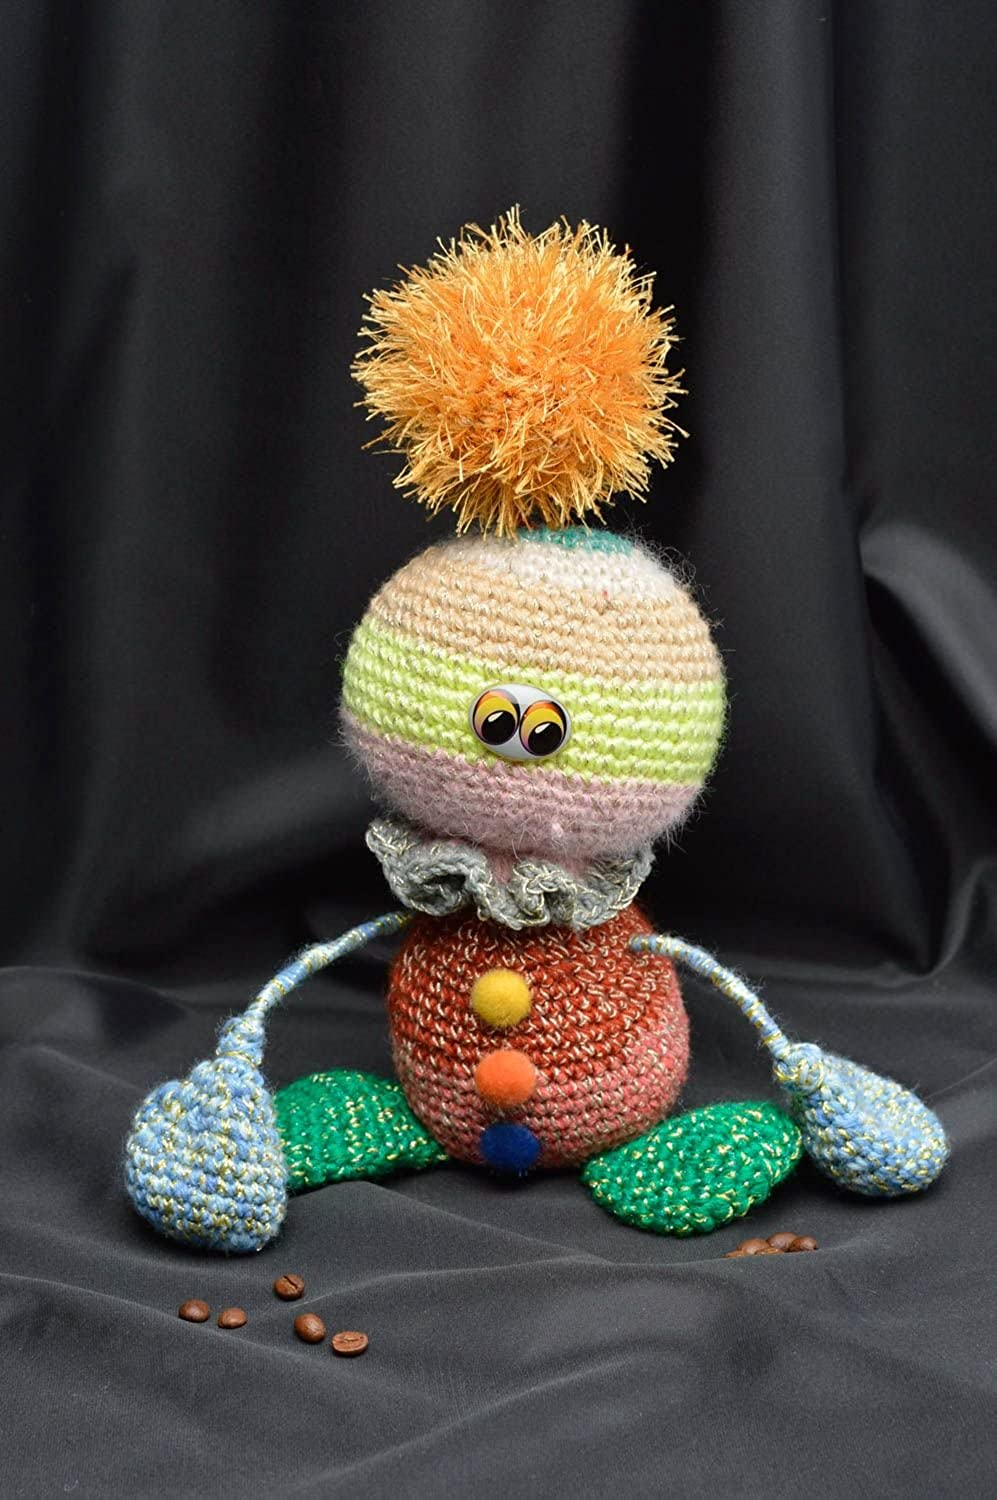 Unusual Handmade Soft Toy Stylish Crocheted Souvenirs Unusual Present for Kids